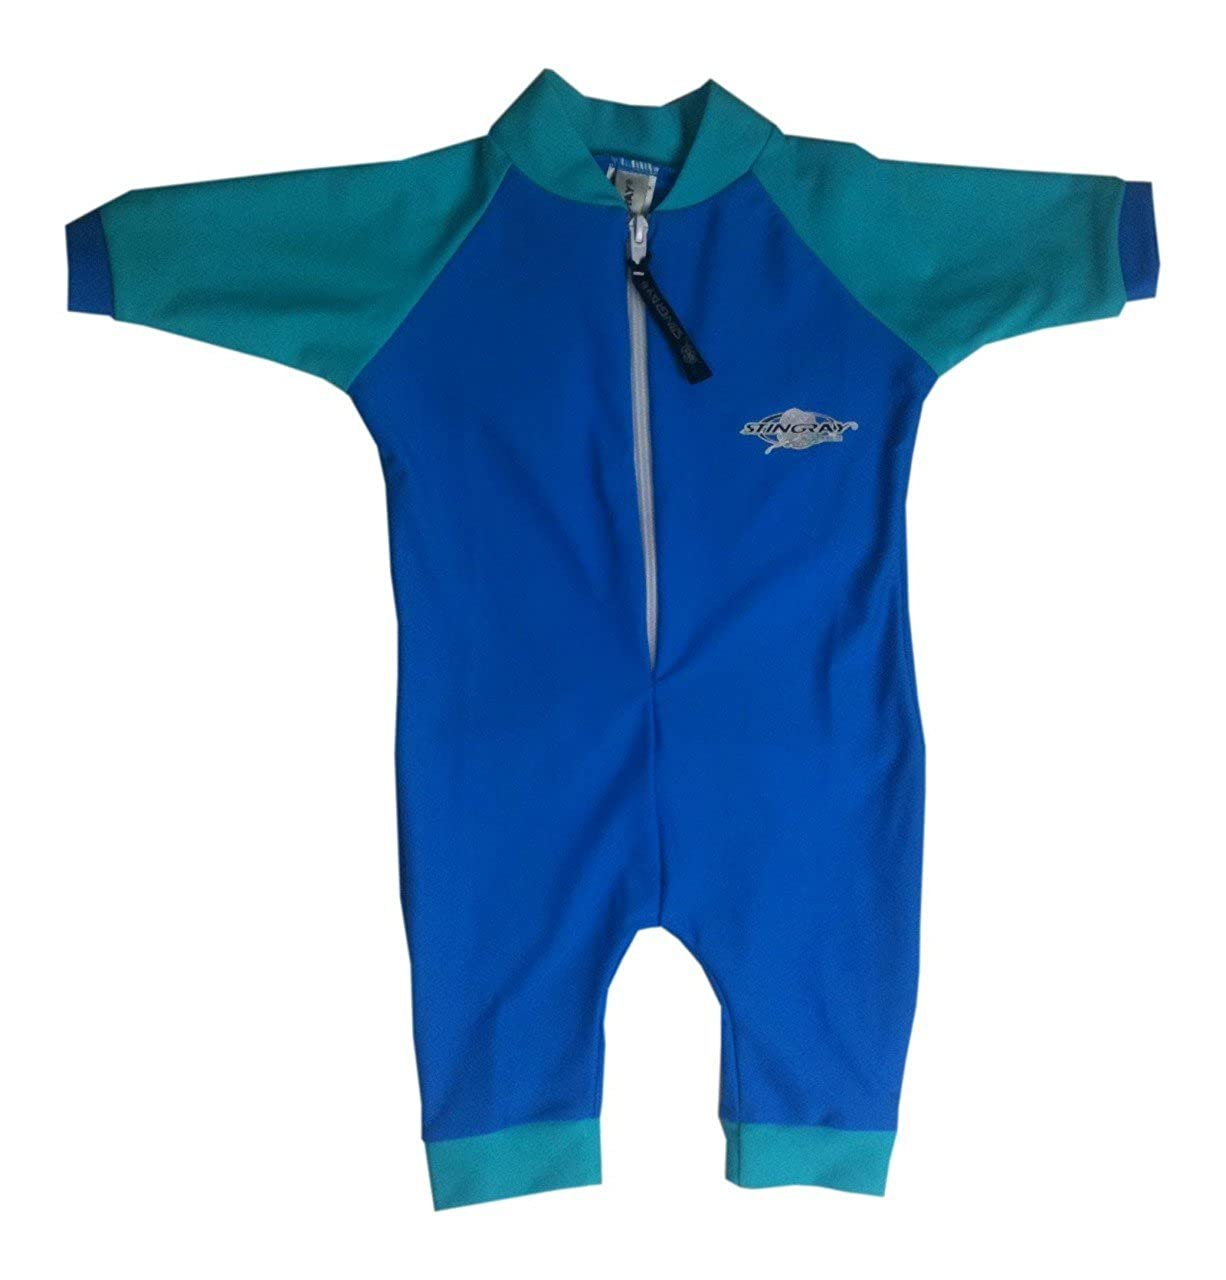 Stingray Australia Baby UV Sun Protection Romper Bathing Suit- Royal Jade size 1 ST2000-AQ